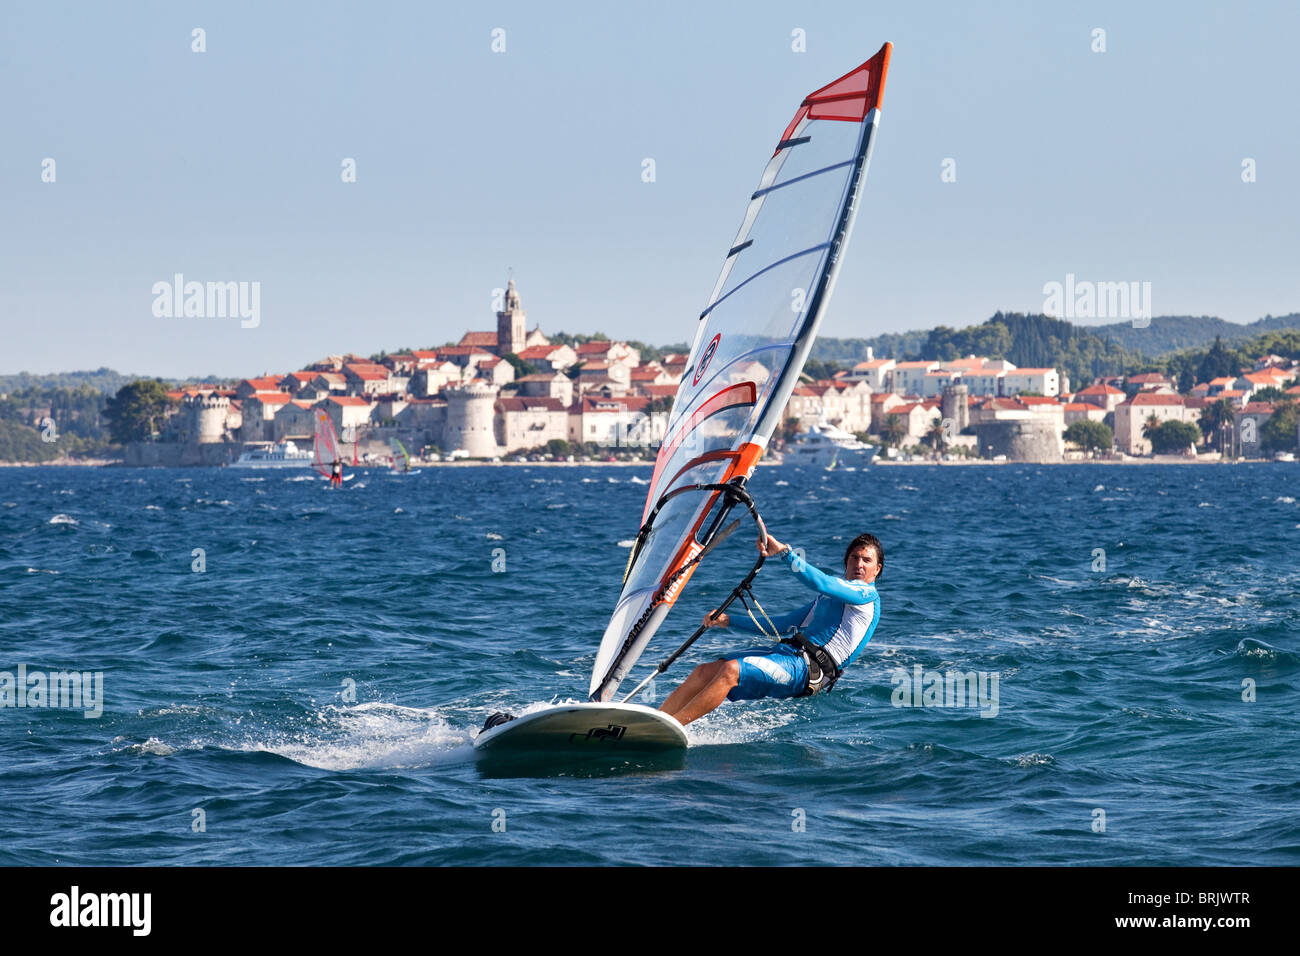 Windsurfing in Croatia in the background Korcula, Dalmatian coast, Croatia - Stock Image